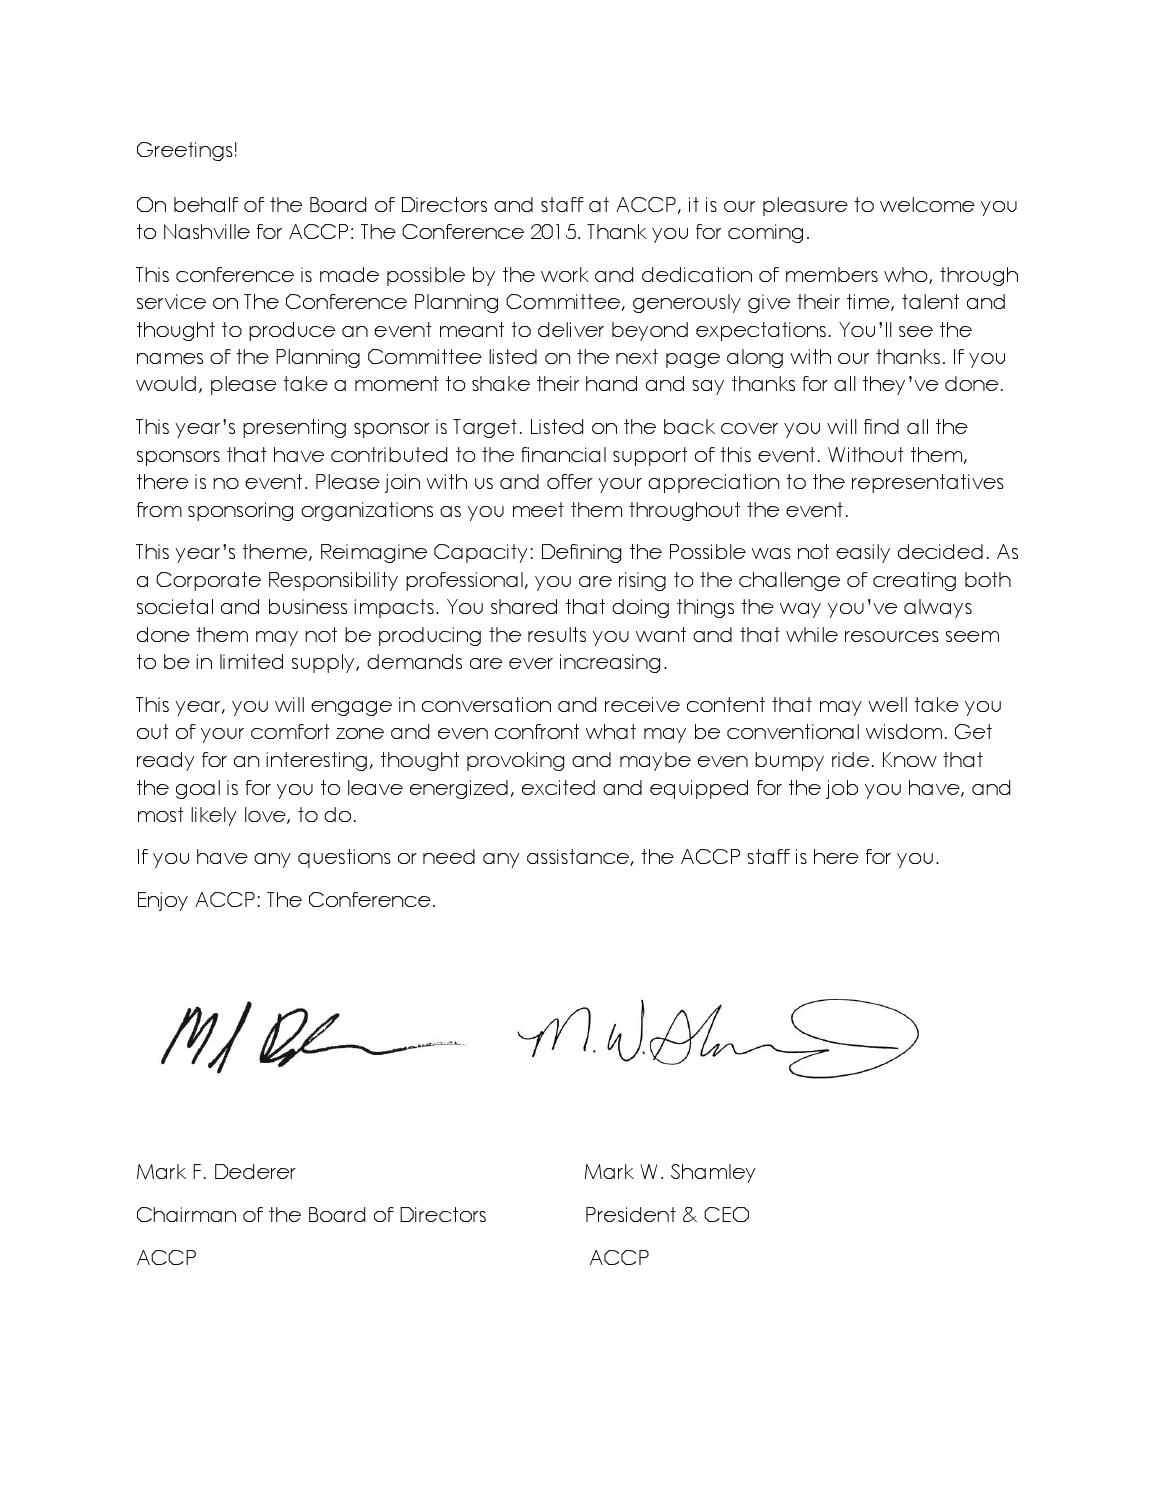 Accp  The Conference 2015 Welcome Letter By Accp